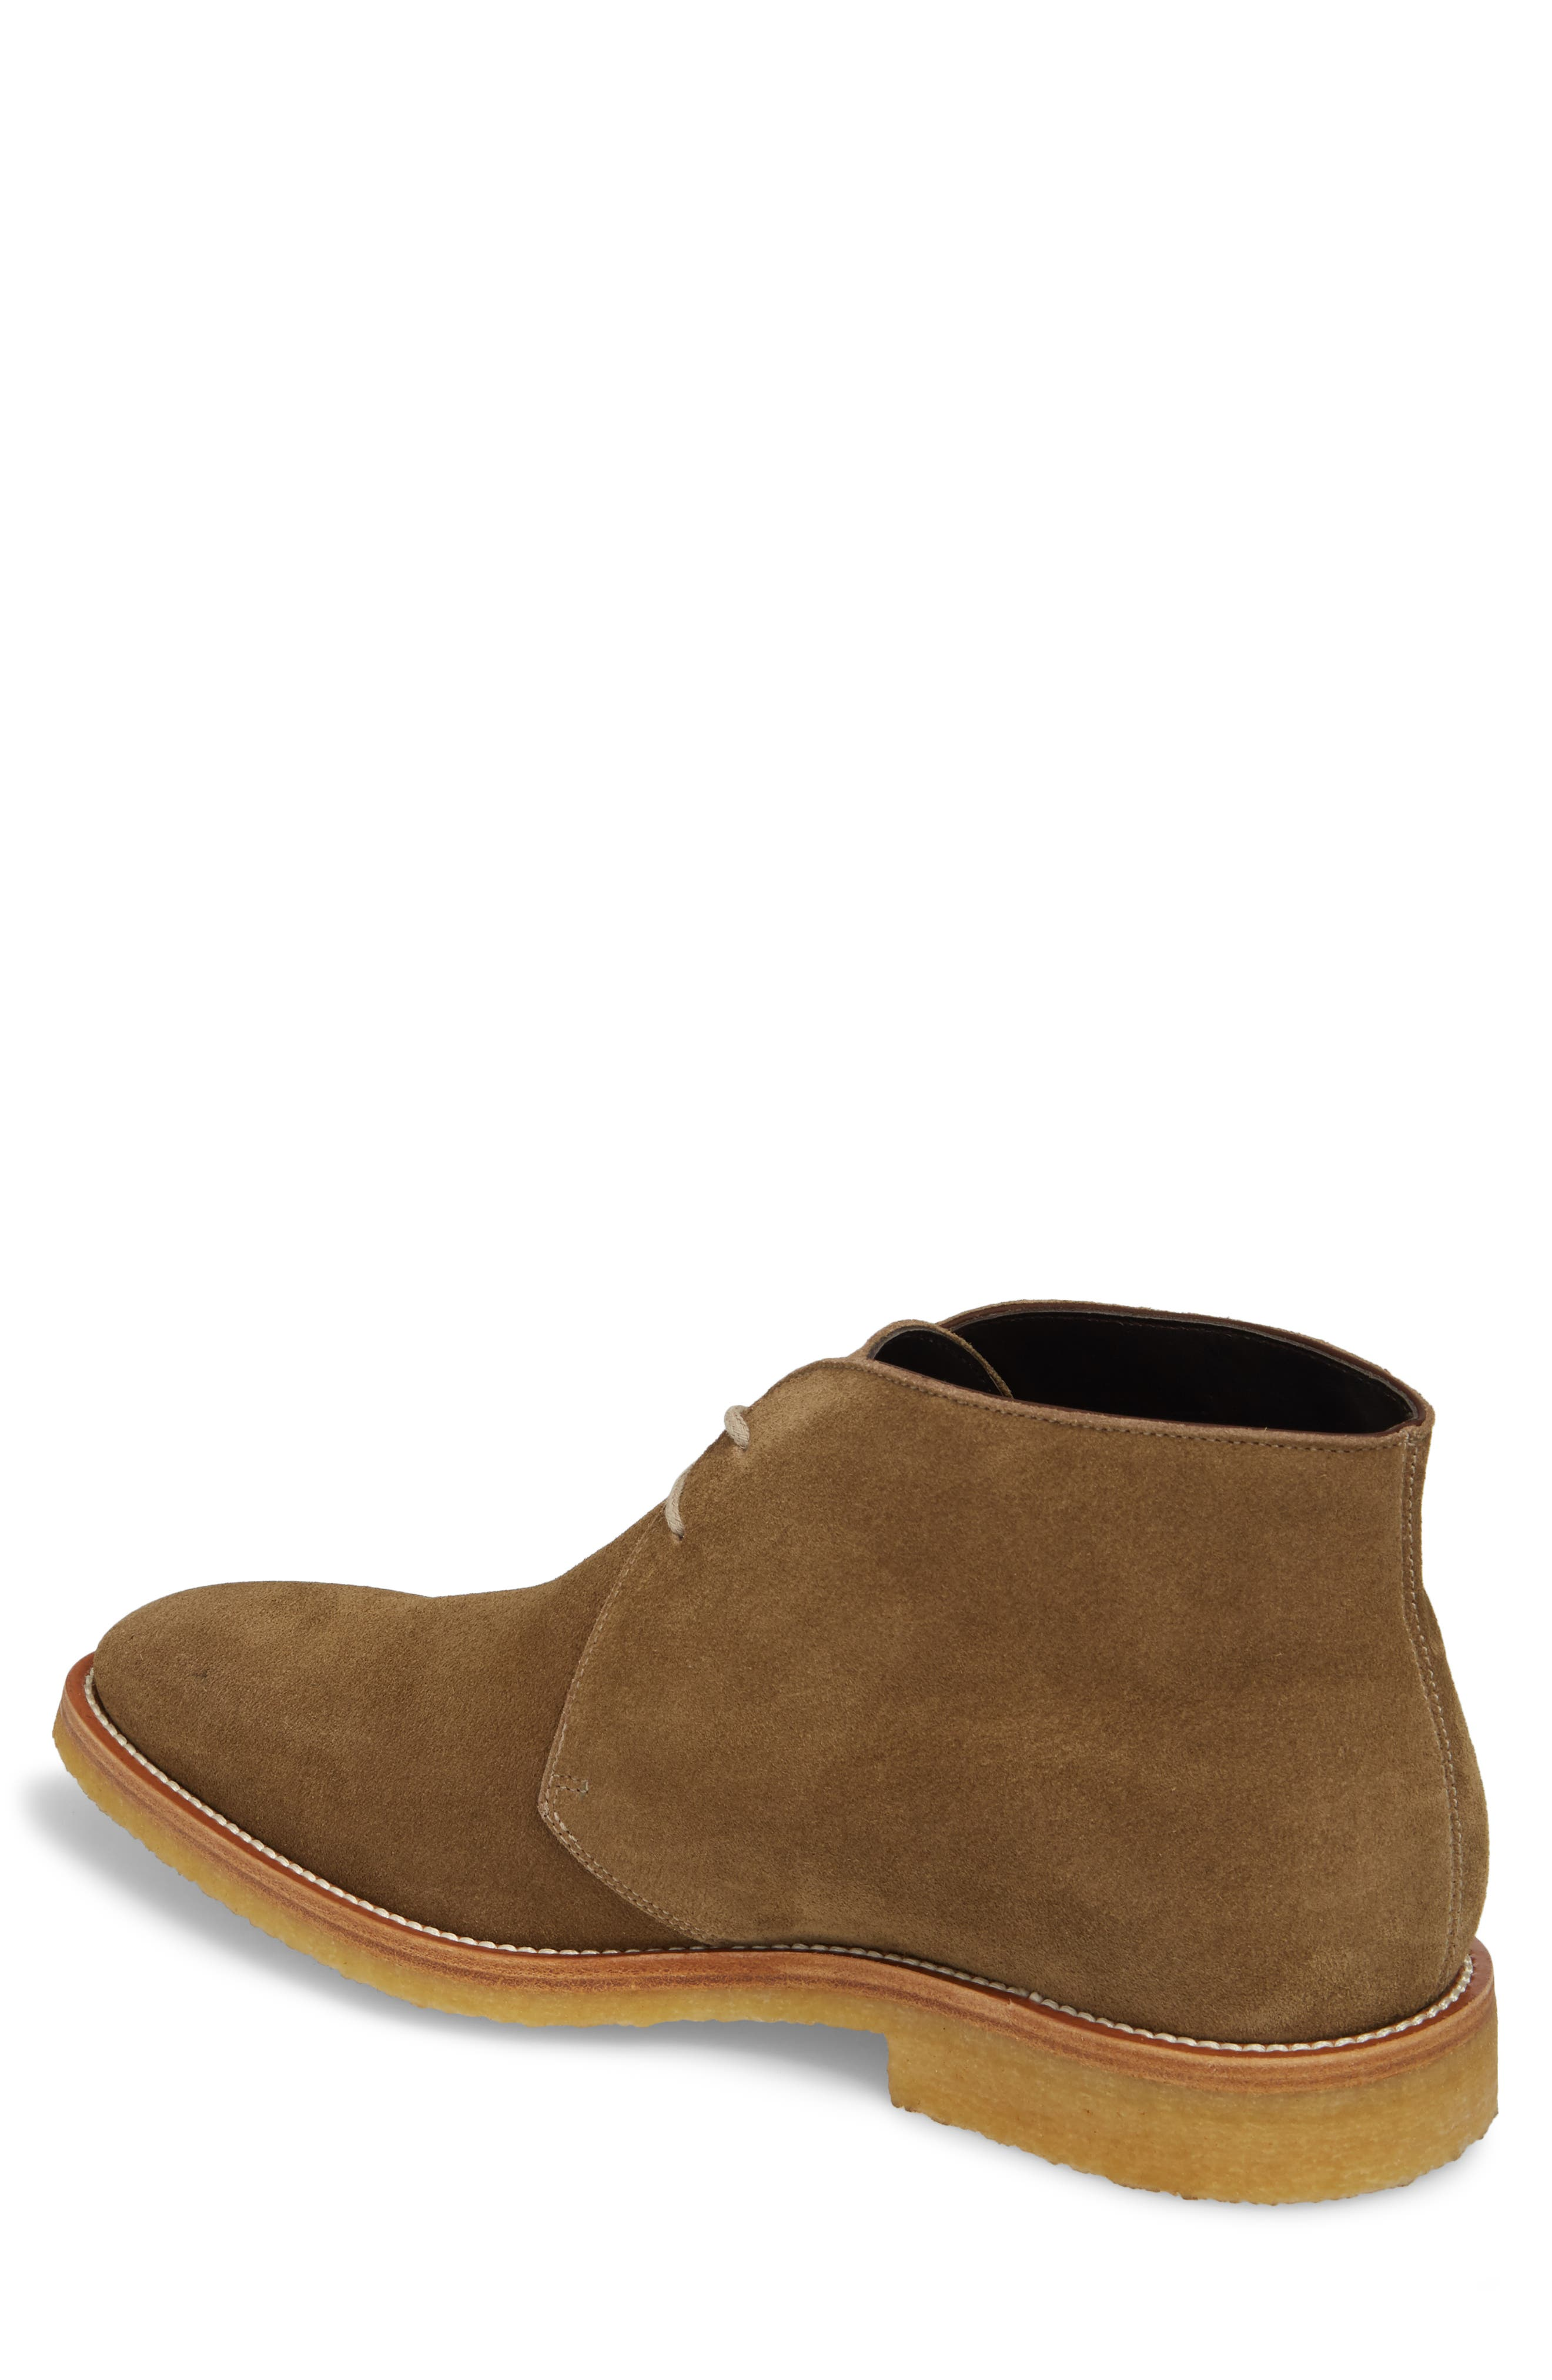 Banker Chukka Boot,                             Alternate thumbnail 2, color,                             Taupe Suede